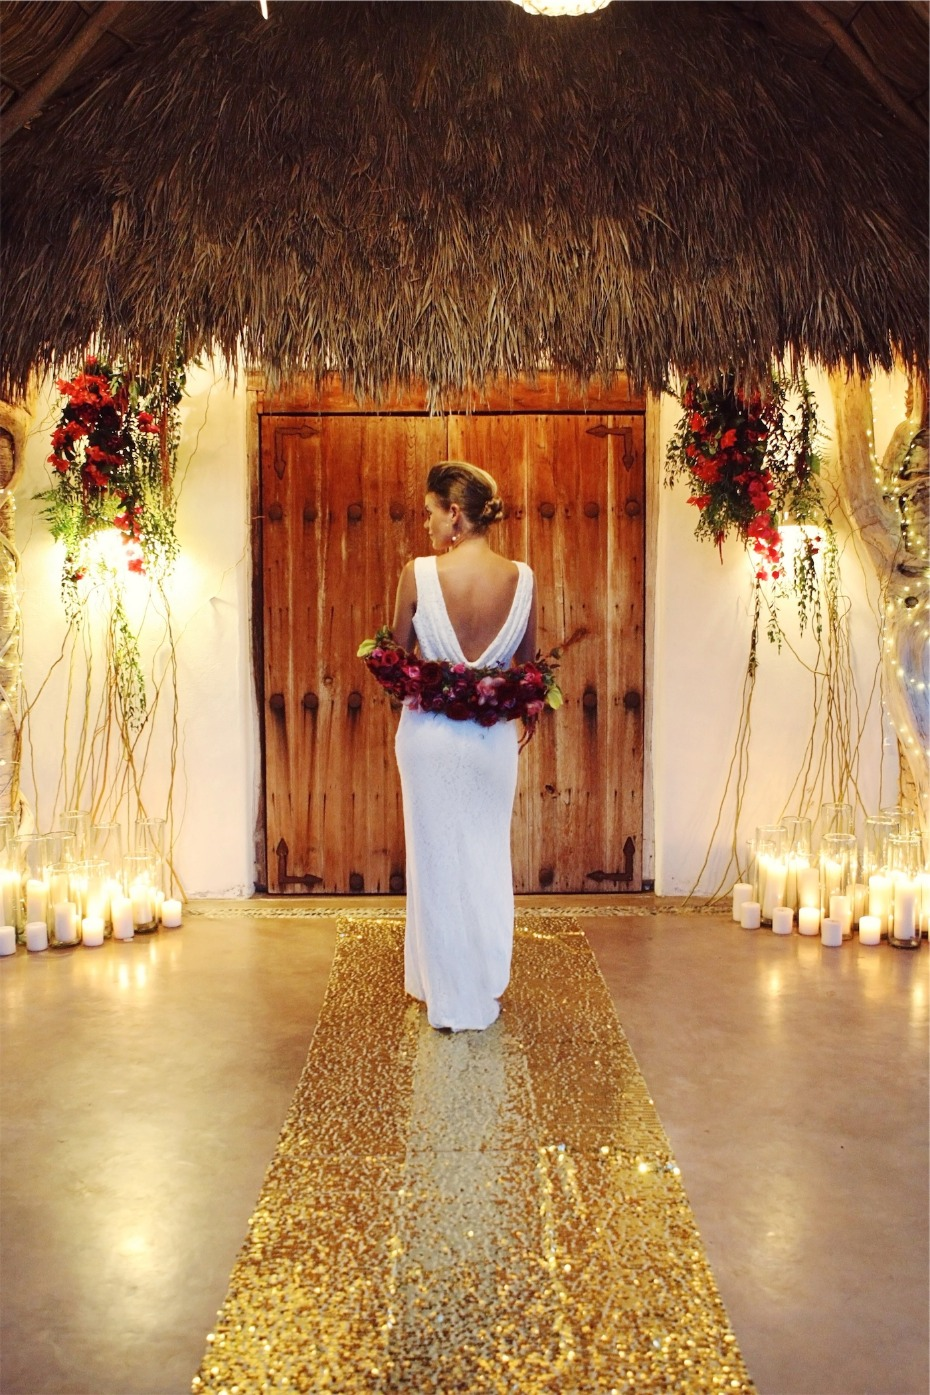 tropical and glamorous candle lit wedding ceremony in Mexico